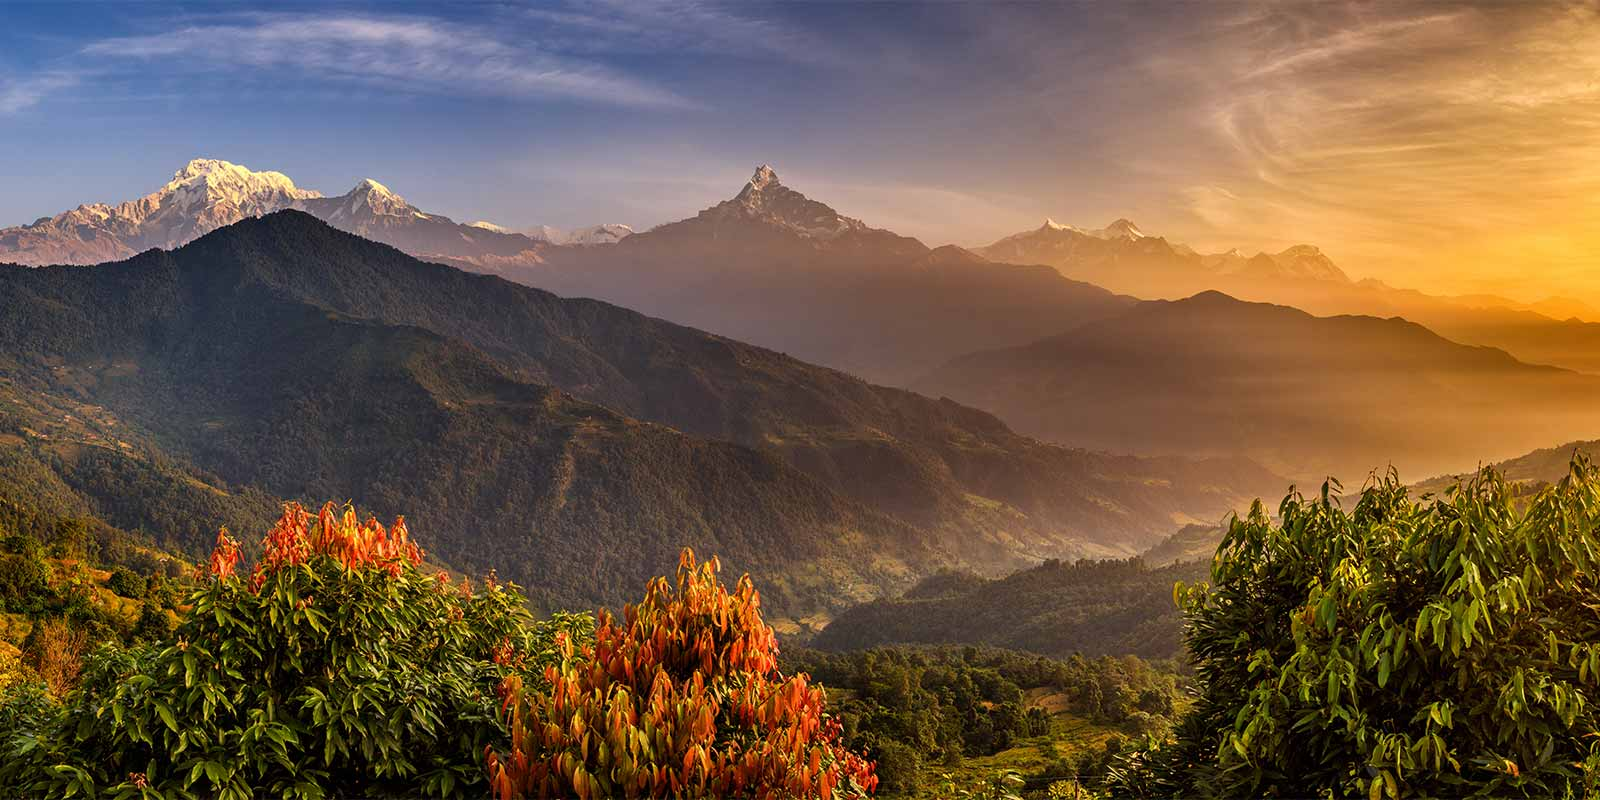 Sunrise and autumn colours in the Himalayas